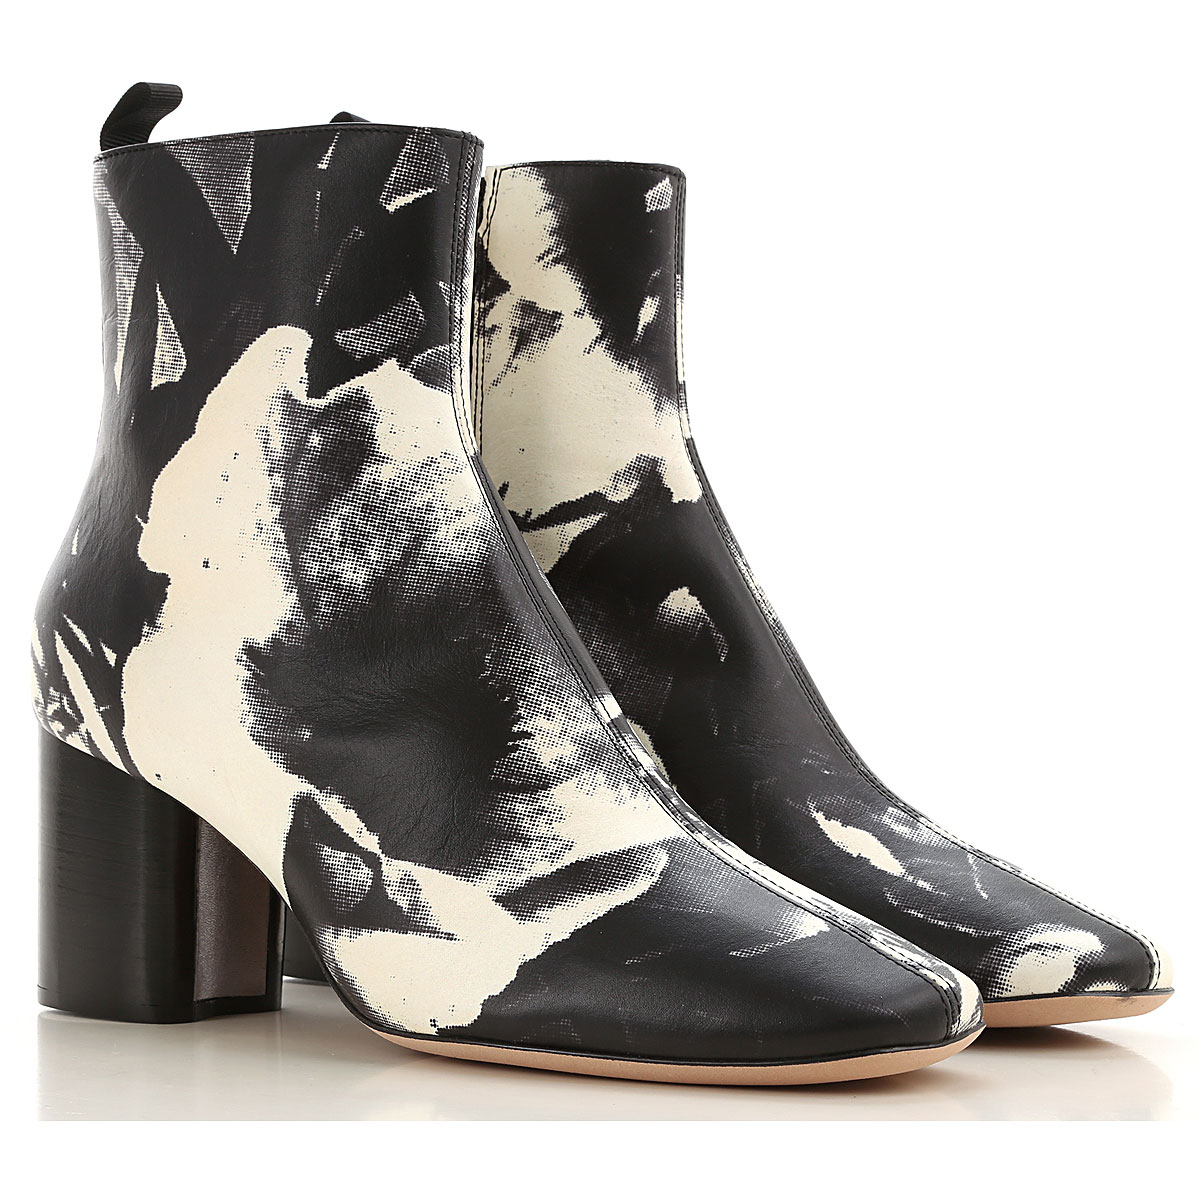 Paul Smith Boots for Women, Booties On Sale, Black, Leather, 2019, 10 11 5 6 7 8 9